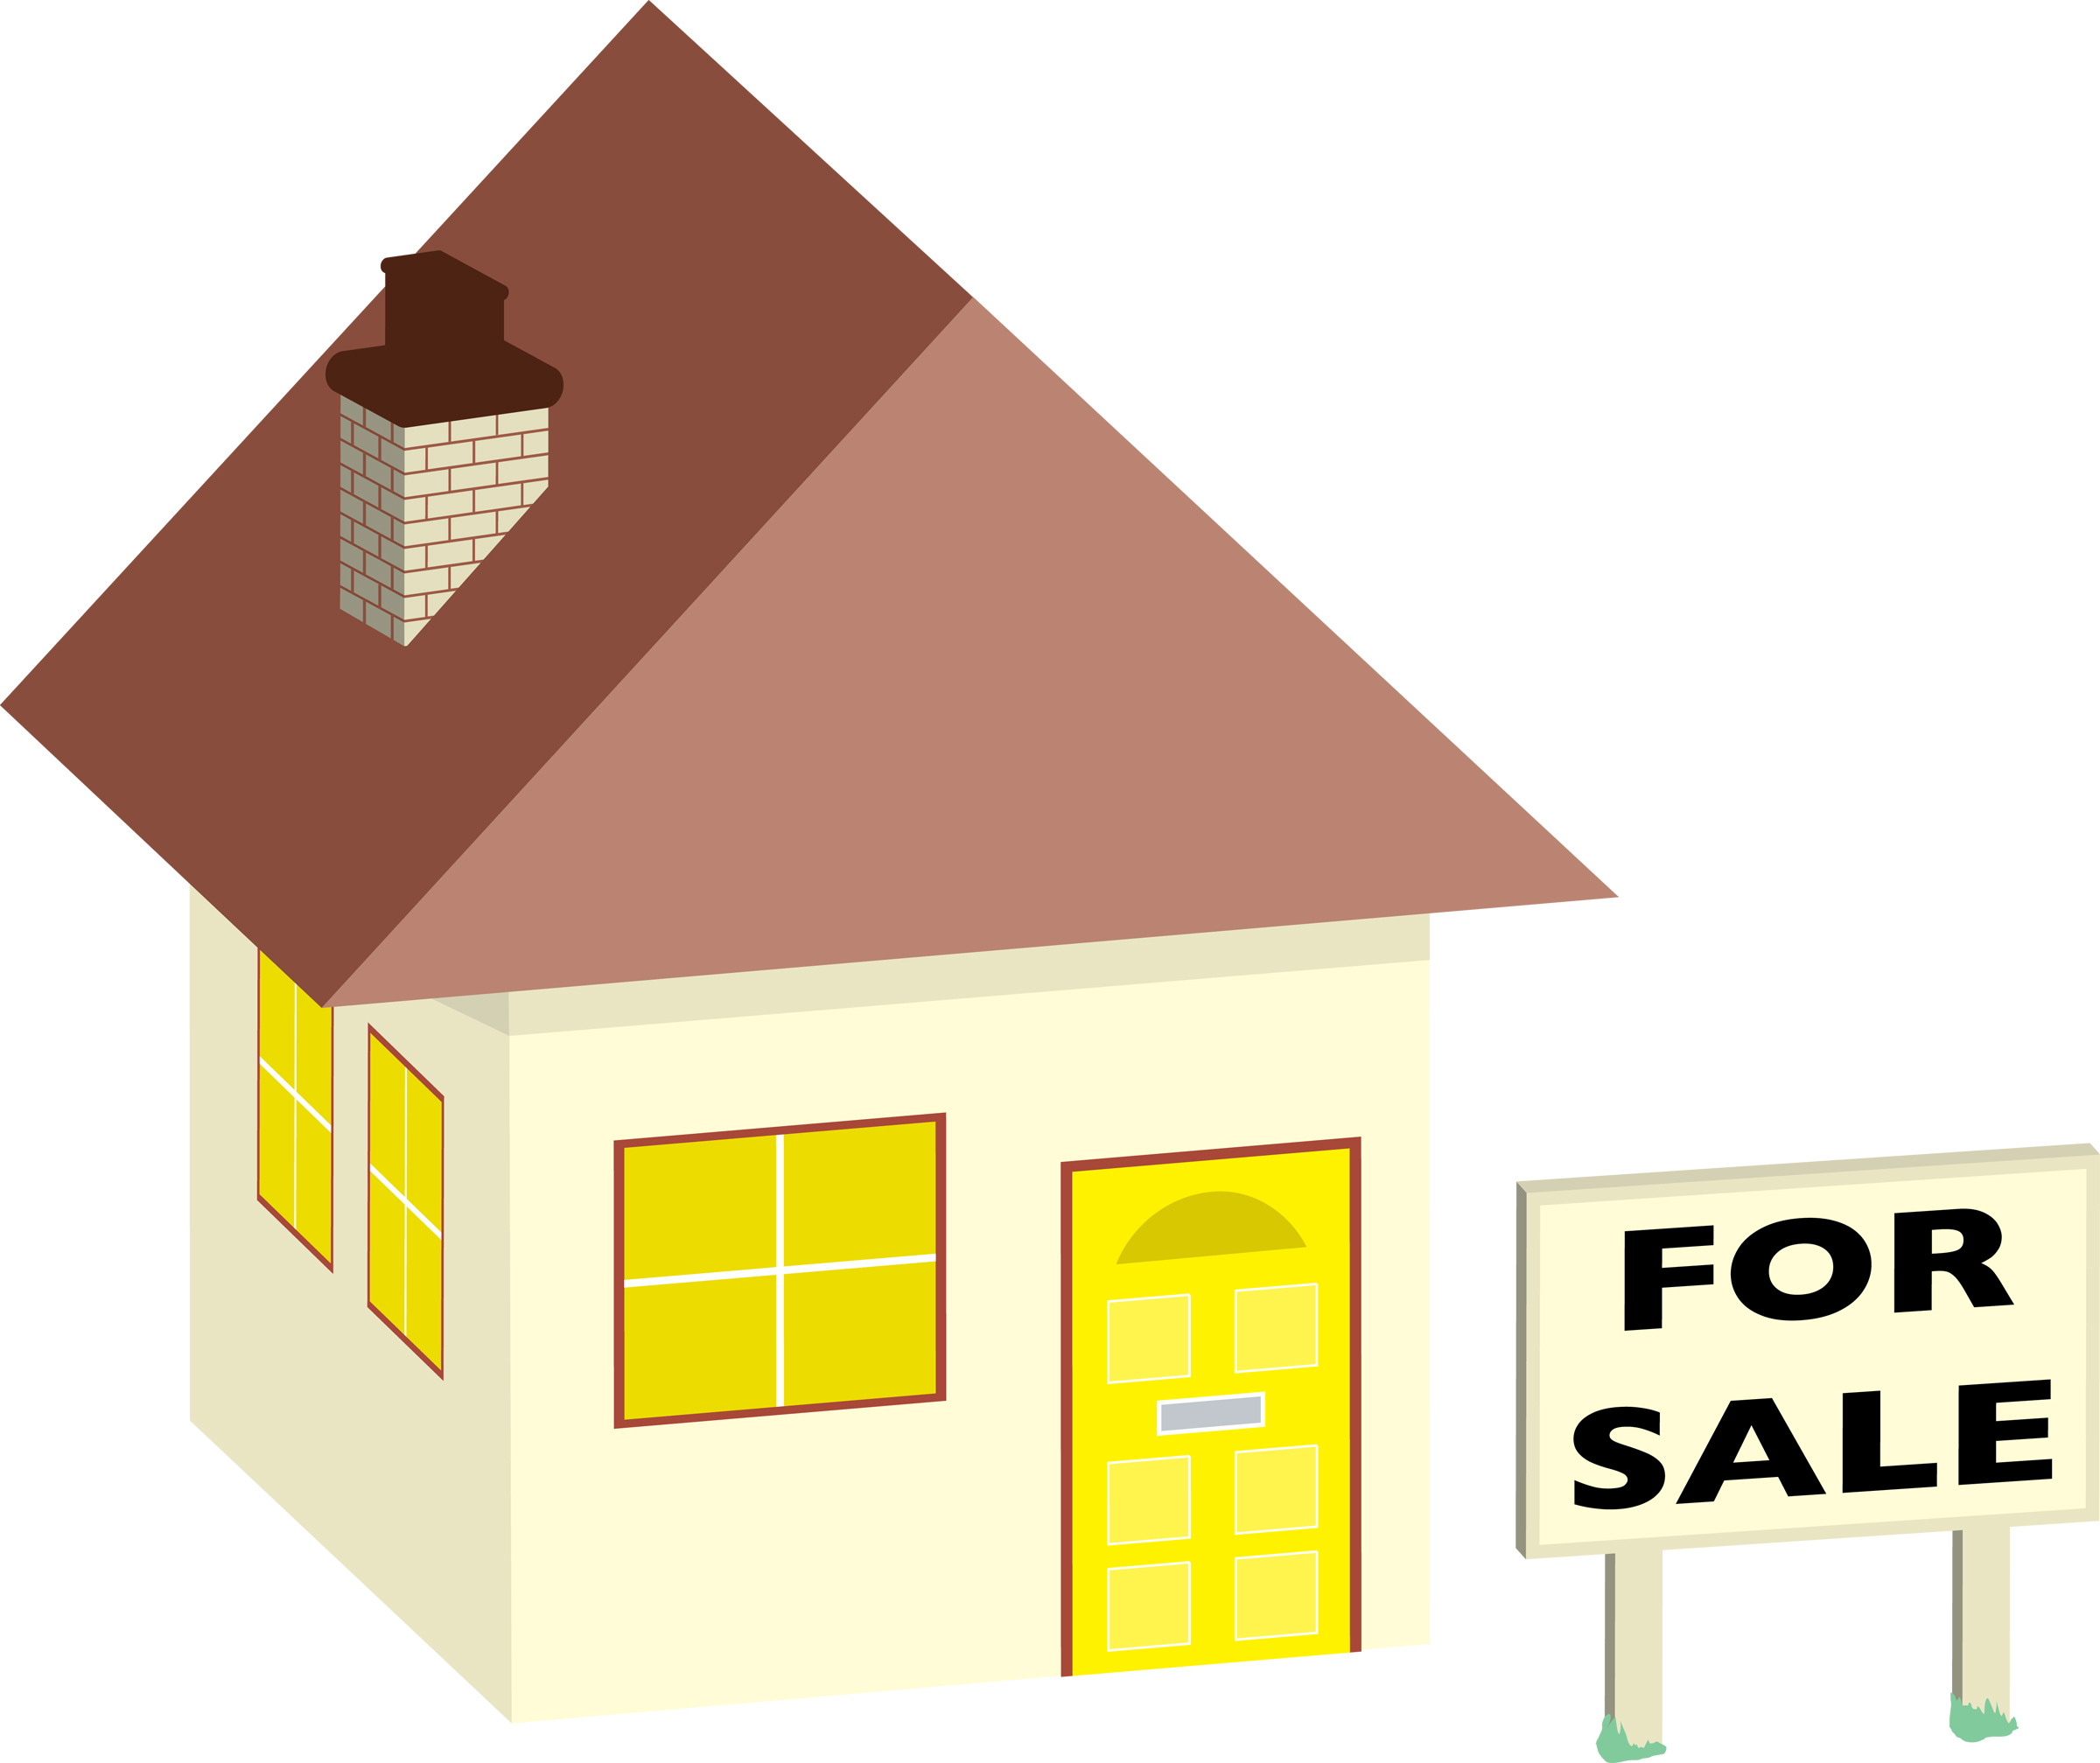 Facts about buying a home - You Need A Hud Selling Broker To Purchase A Central Coast Hud Property Only A Registered Hud Selling Broker Can Place A Bid On A Hud Property For You